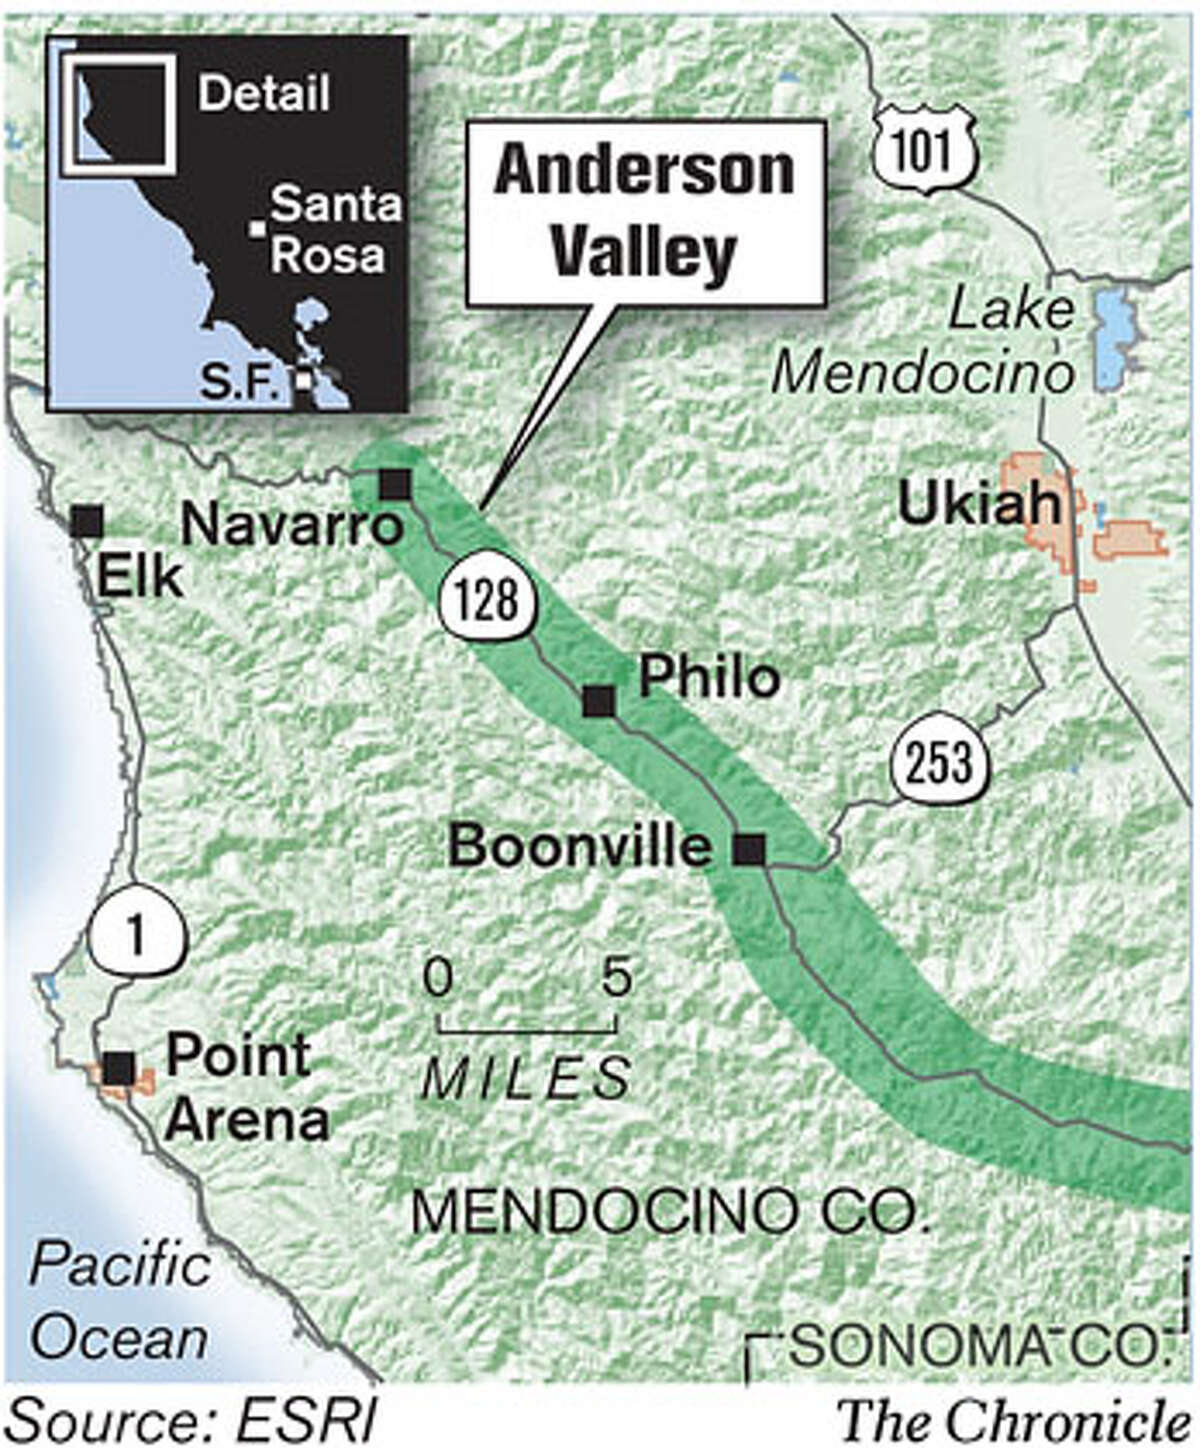 Anderson Valley. Chronicle Graphic